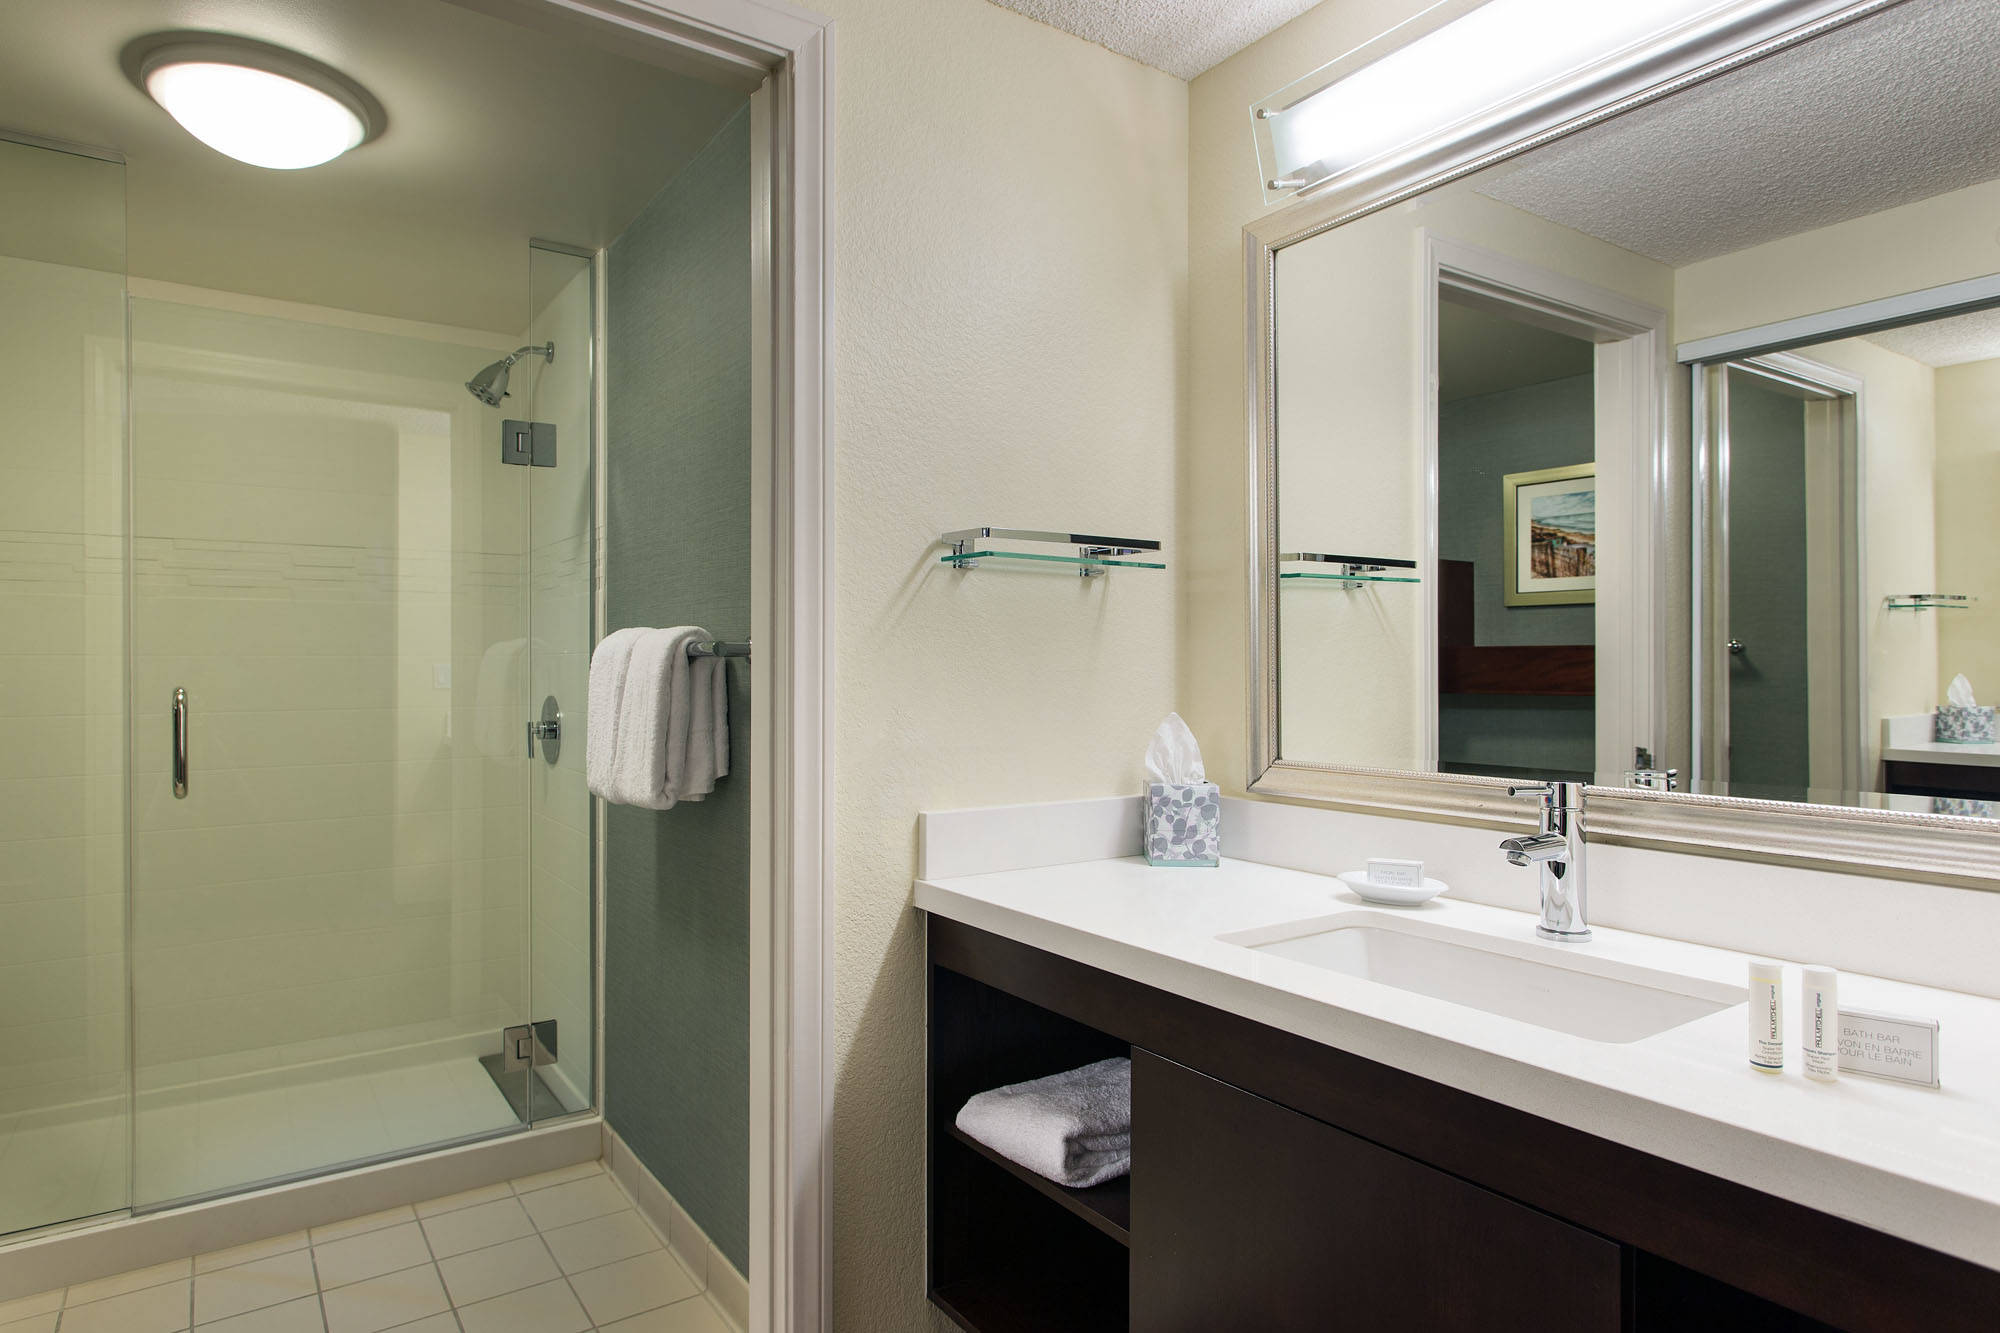 Suite Bathroom - Get ready in style. The vanity area of our refreshed suite bathrooms are brightly lit by mirror lighting and feature thoughtful storage such as shelving and abundant drawer space.